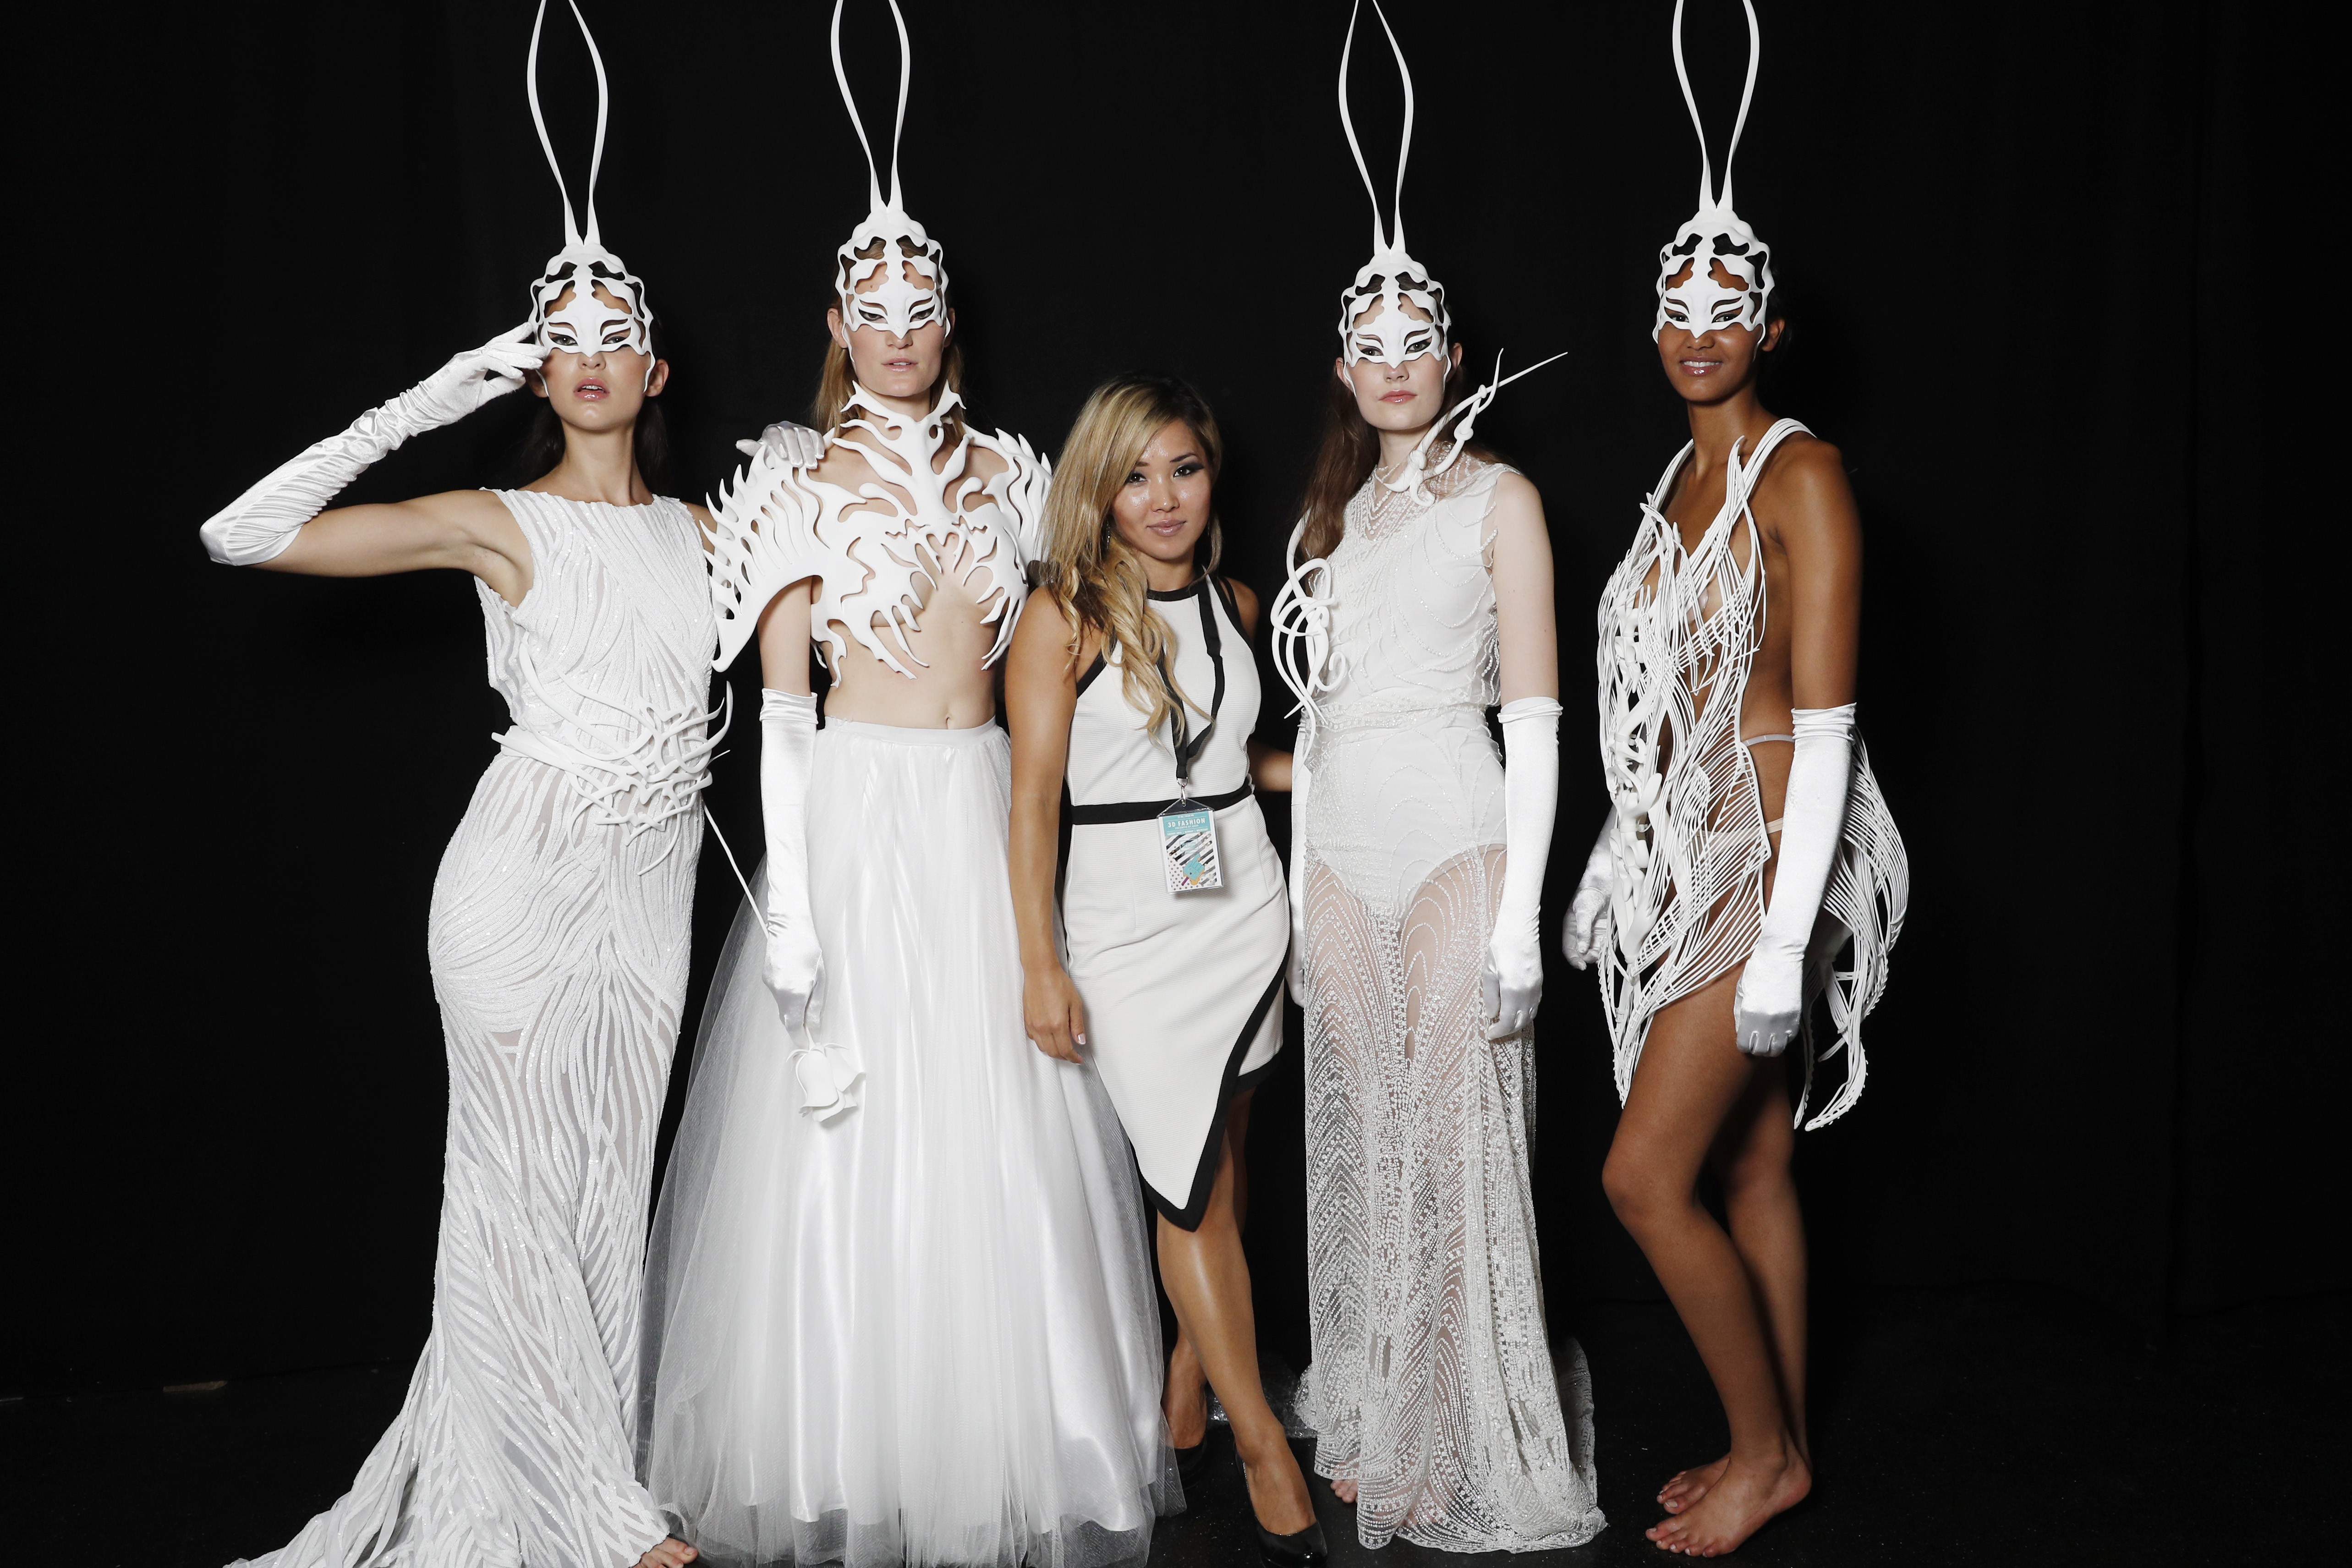 Plava Laguna Style. The fashion show in Germany has introduced 3D printed collection